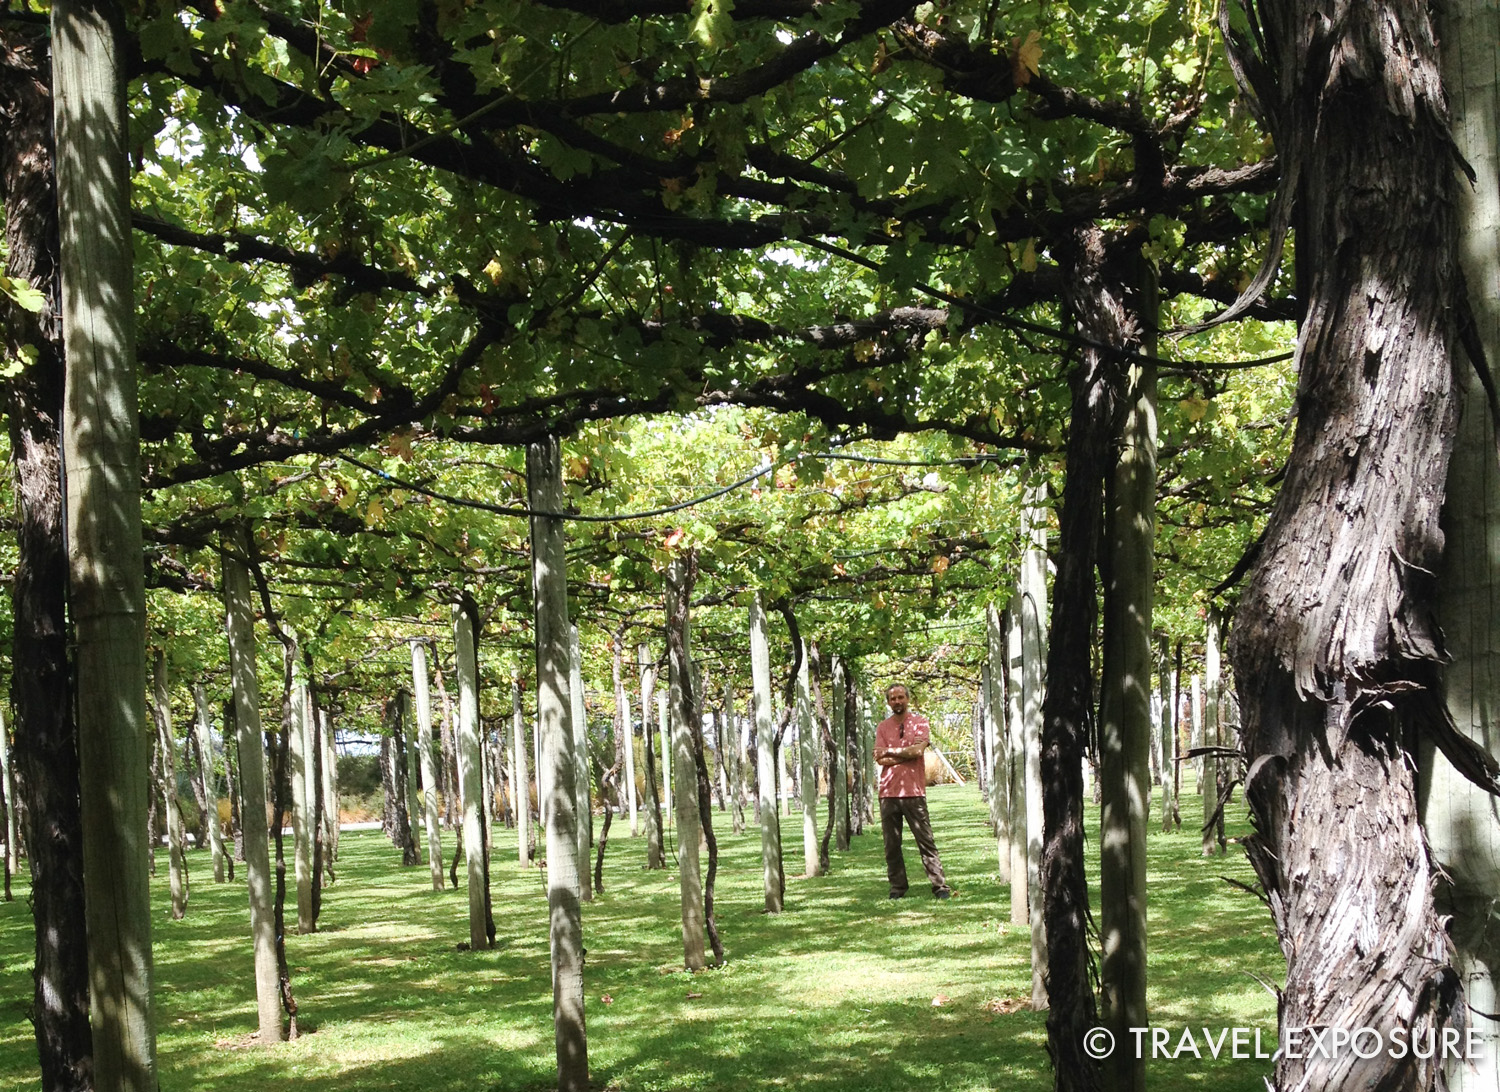 Visiting the wineries in Marlborough